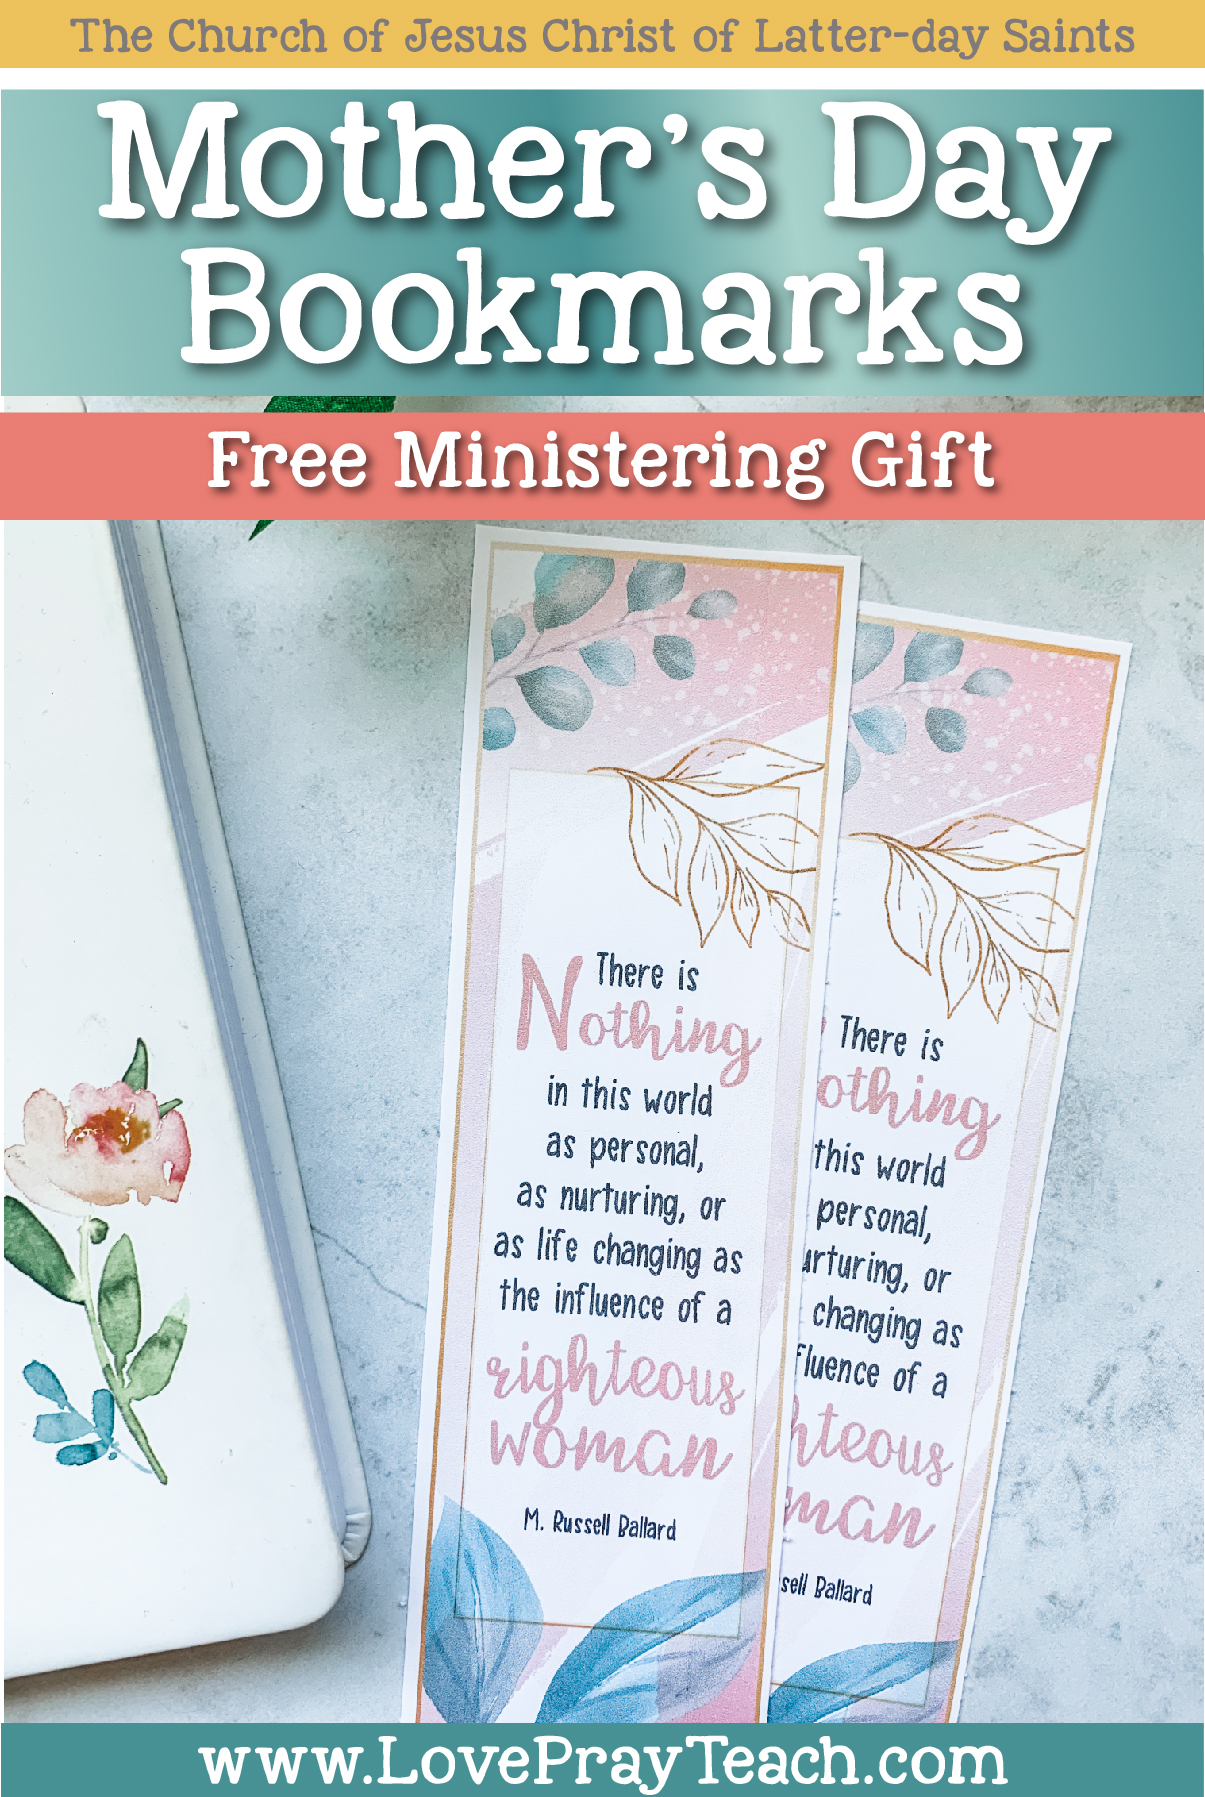 Free Mother's Day Bookmark www.LovePrayTeach.com